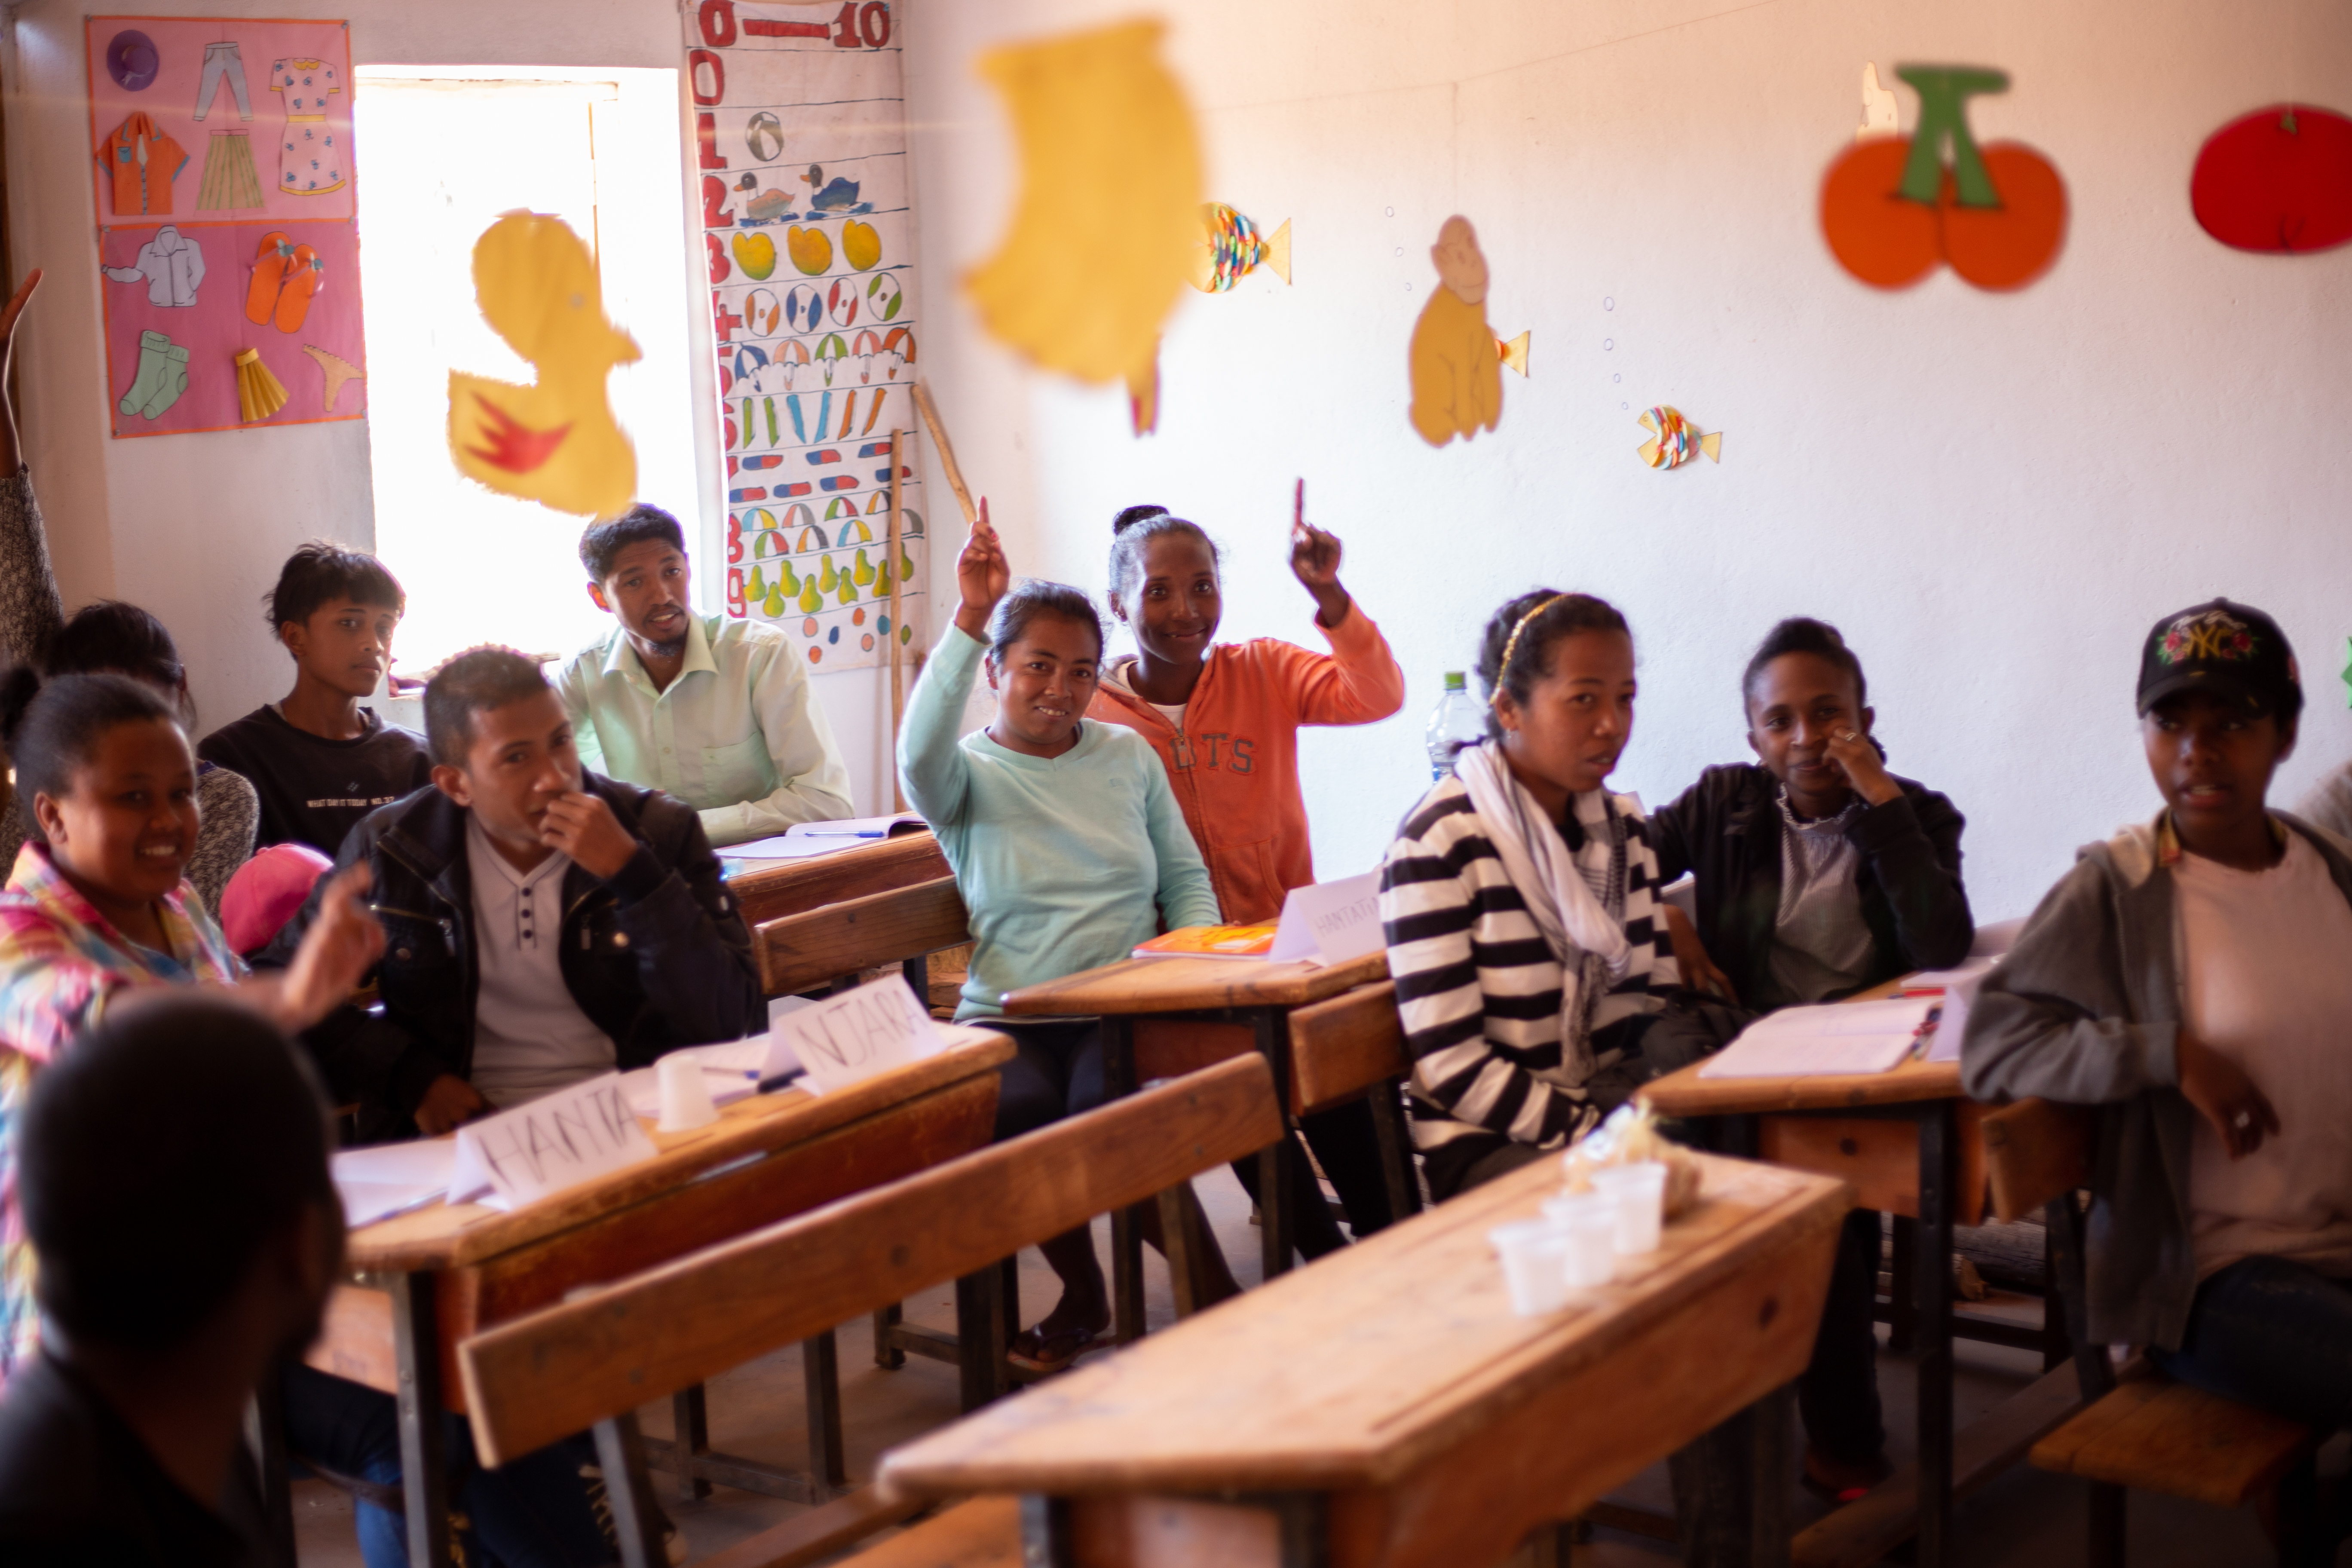 Eleven young people in a classroom setting. Two young women have their hands raised